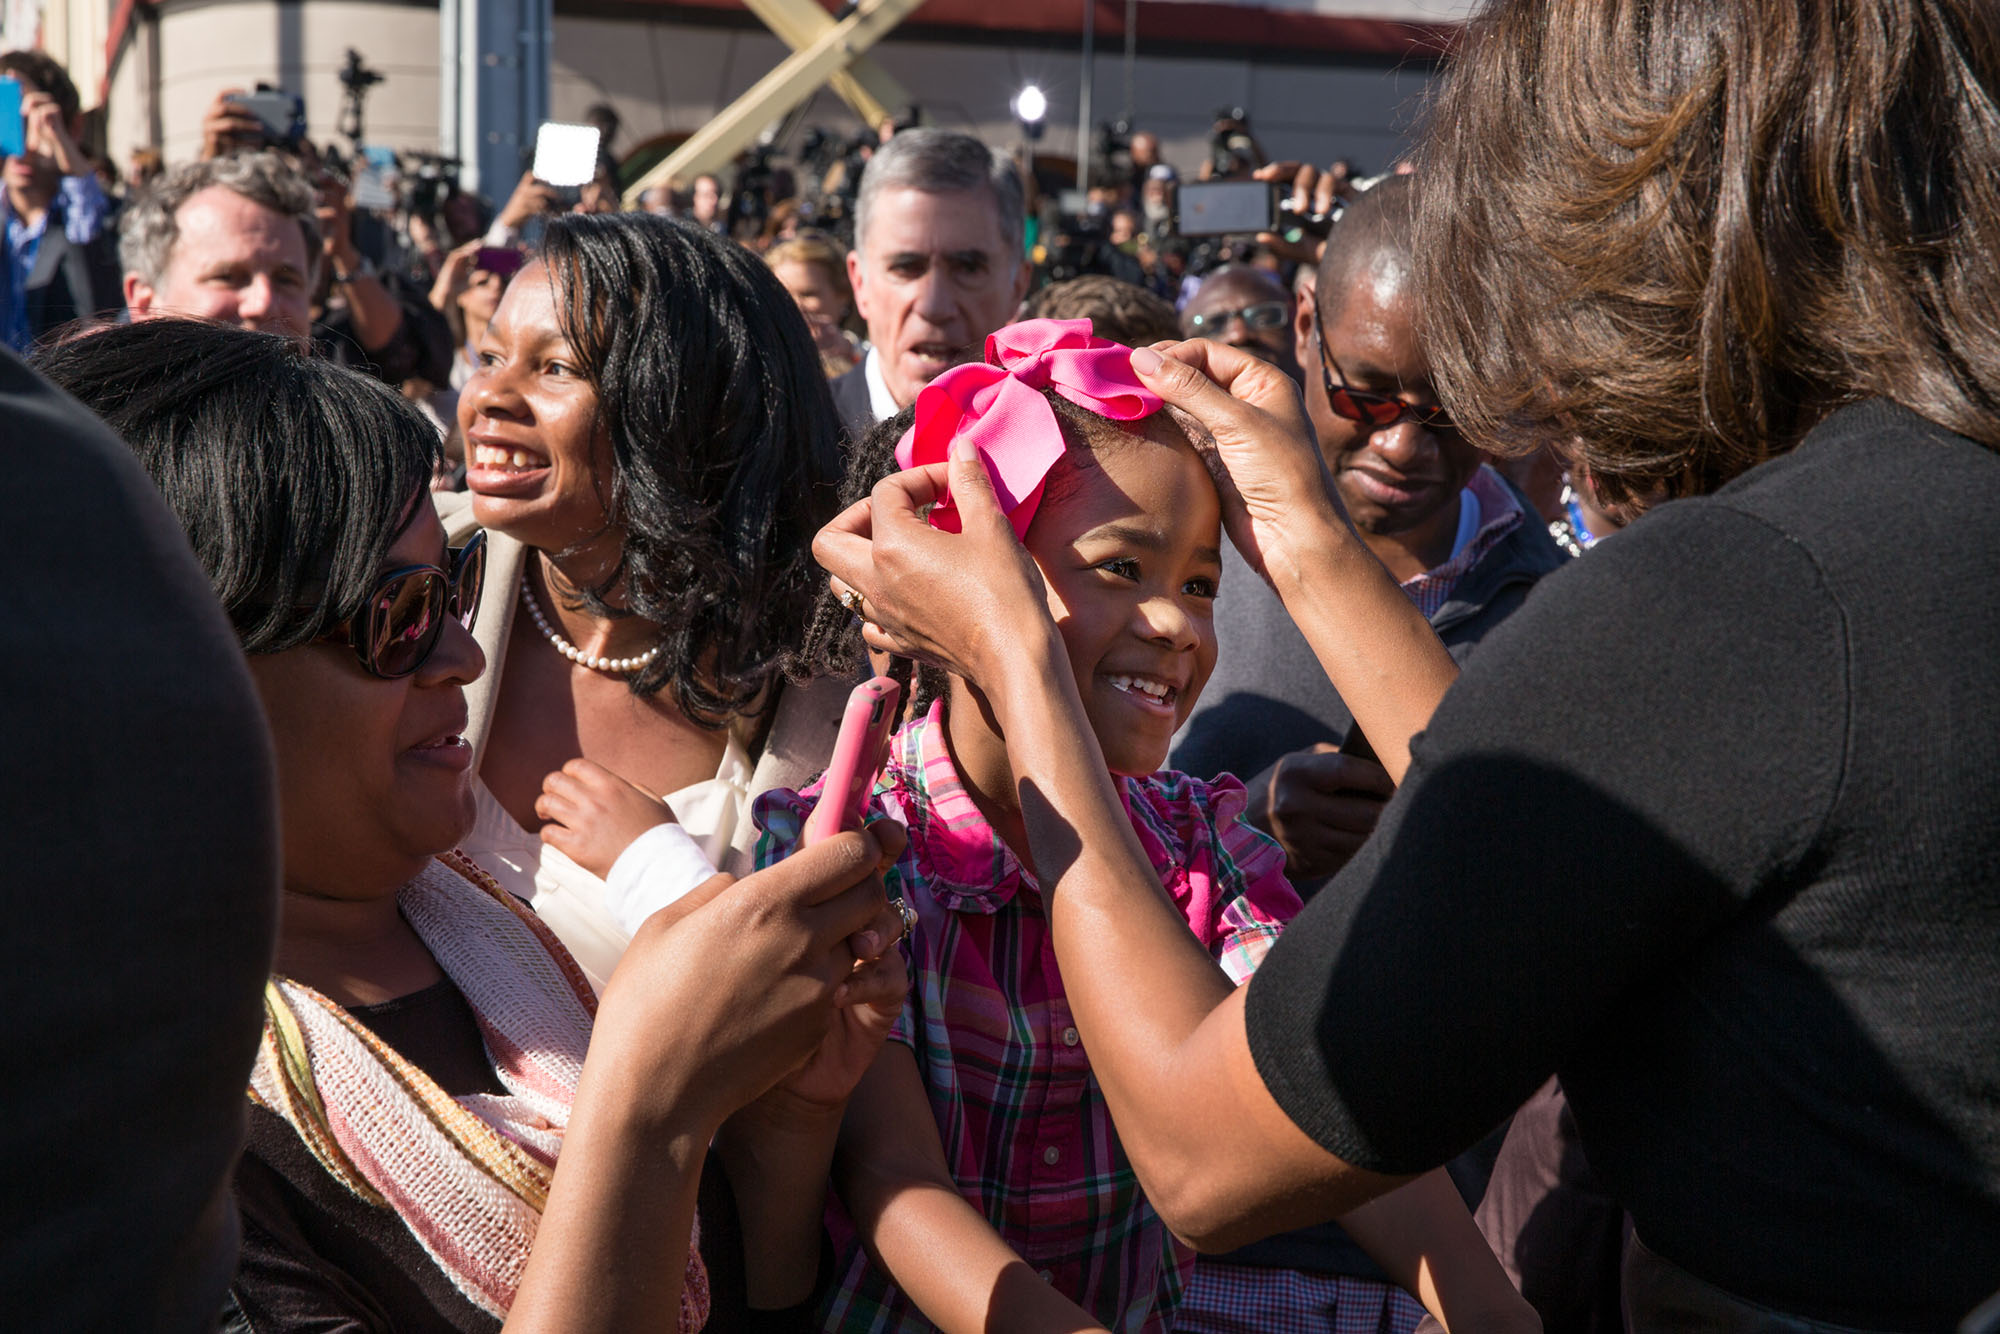 First Lady Michelle Obama adjusts the bow in the hair of a young girl. (Official White House Photo by Pete Souza)